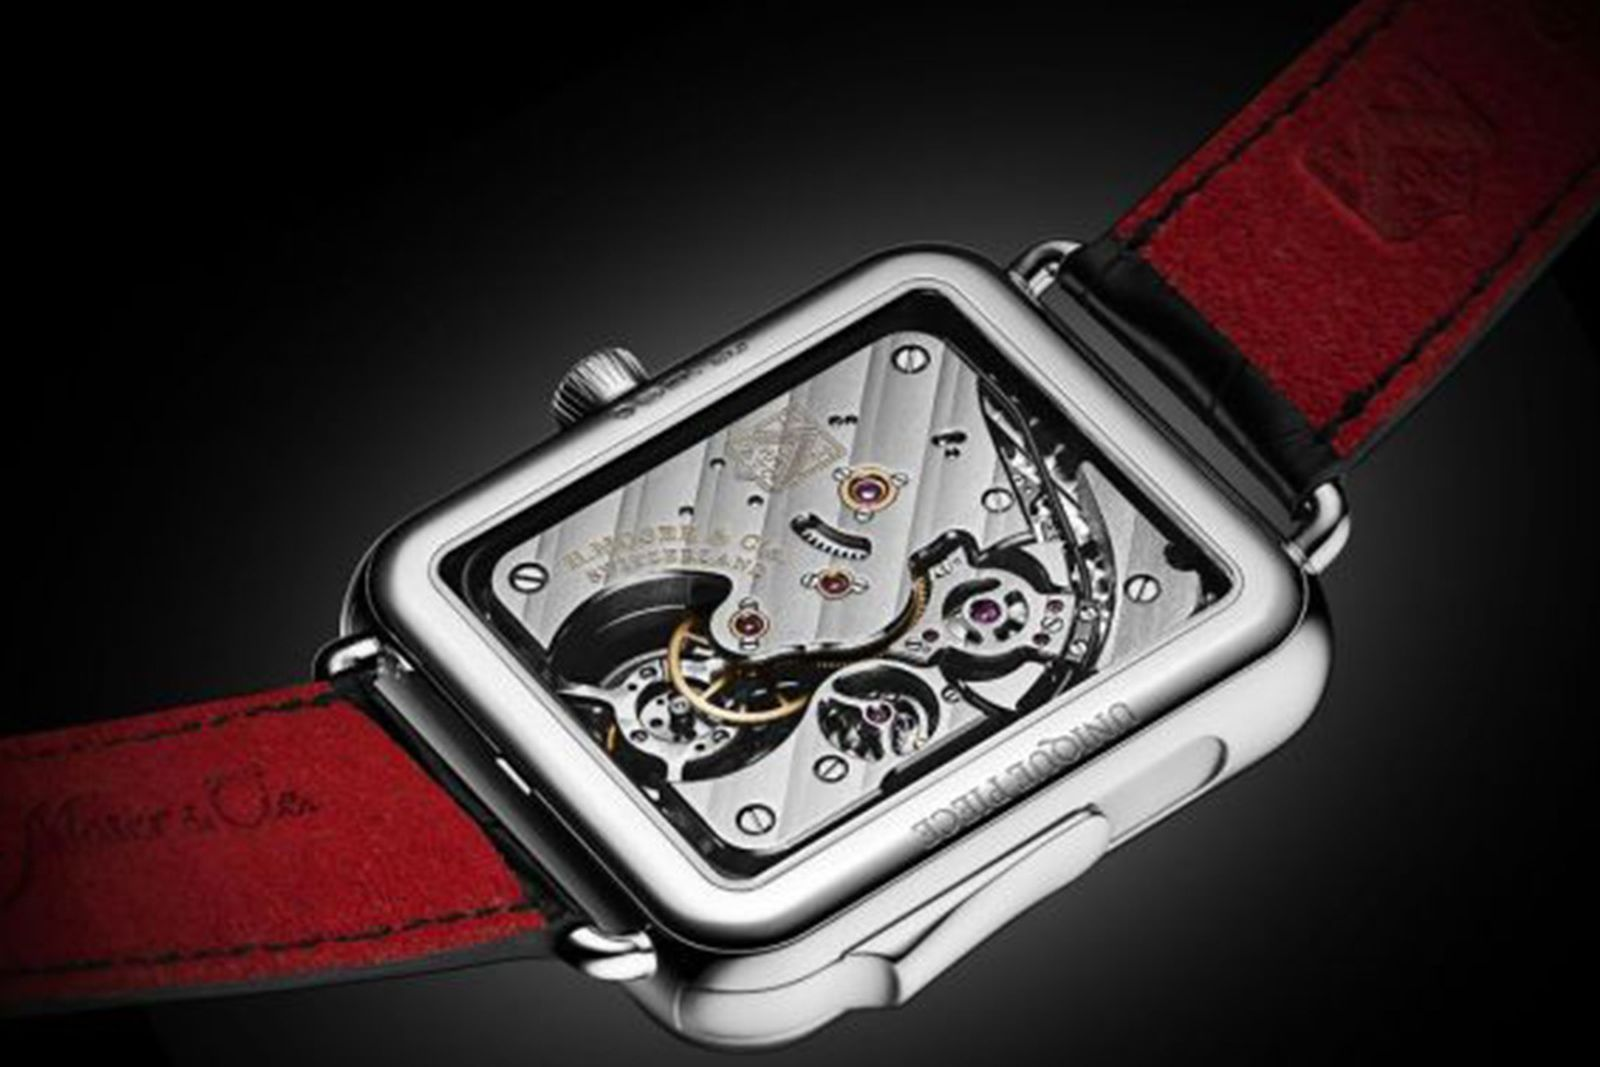 swiss alp watch minute repeater concept black H. Moser & Cie.